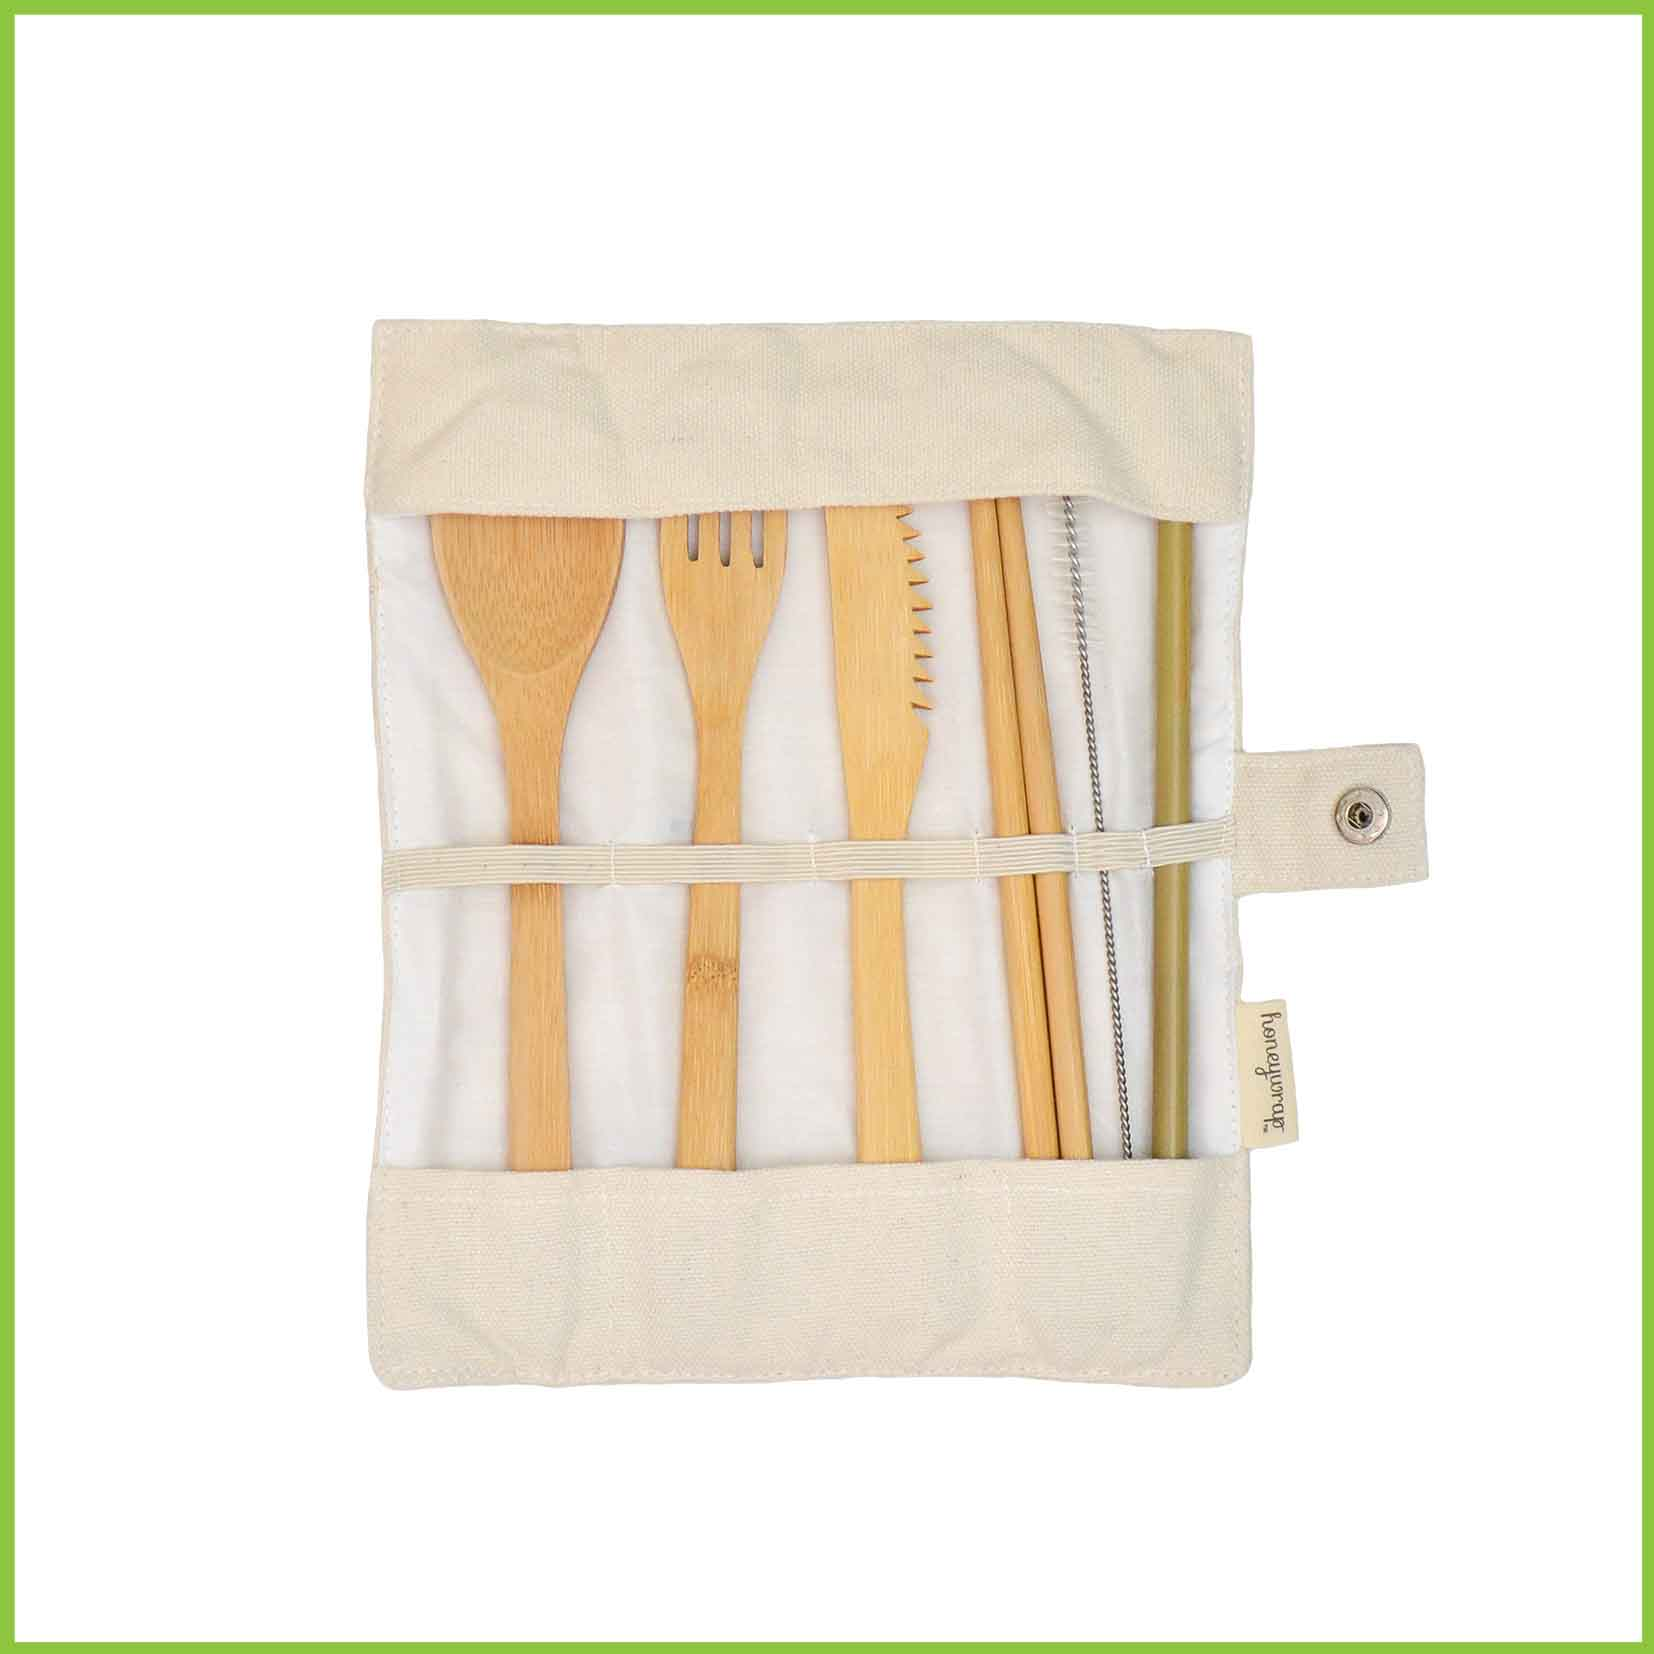 A bamboo cutlery set within a cream canvas case - includes a fork, spoon, knife, chopsticks, straw and cleaner brush.